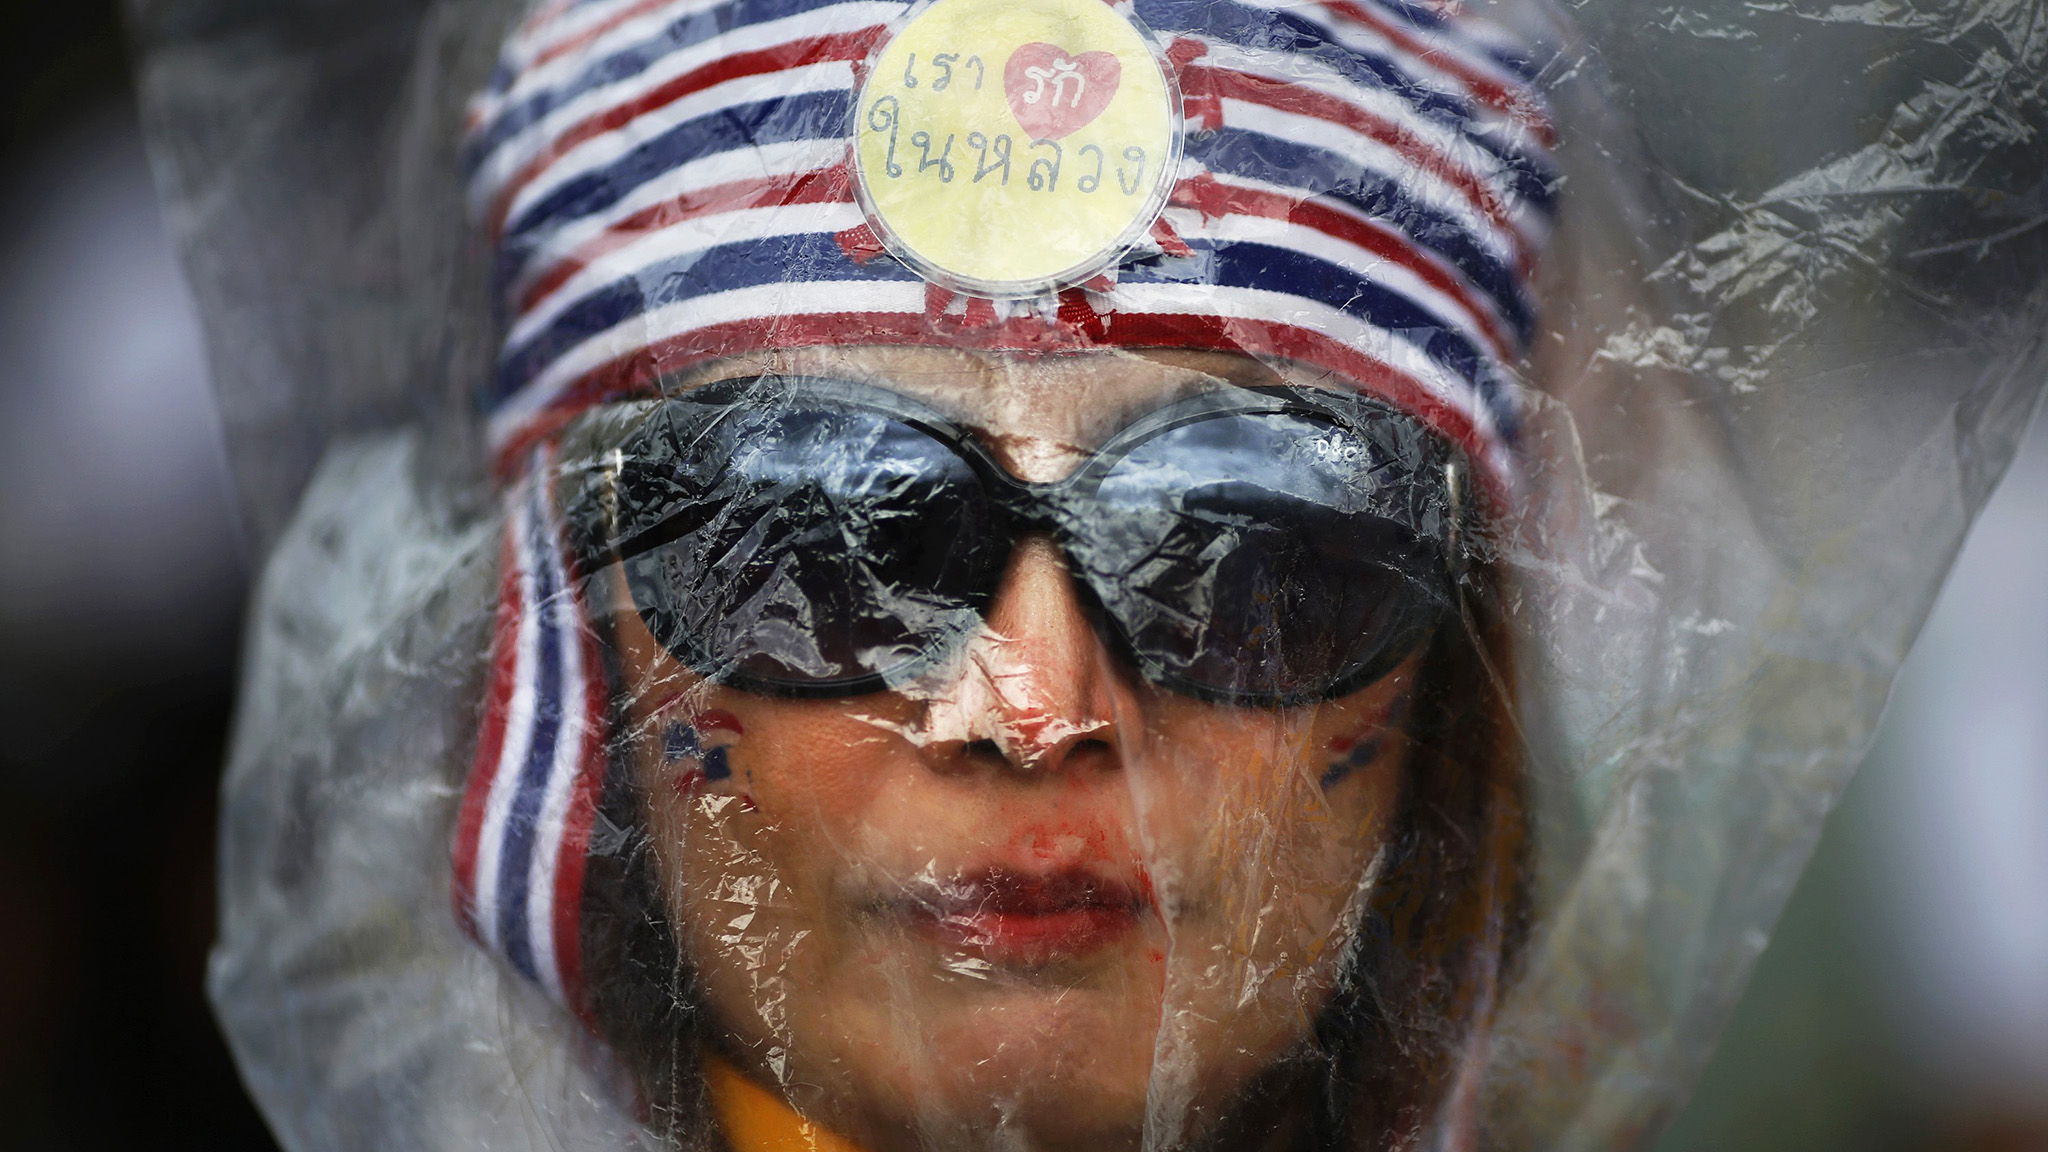 A protester against an amnesty bill wears a plastic bag over her head in front of police barricades on the main road near the government and parliament buildings in central Bangkok